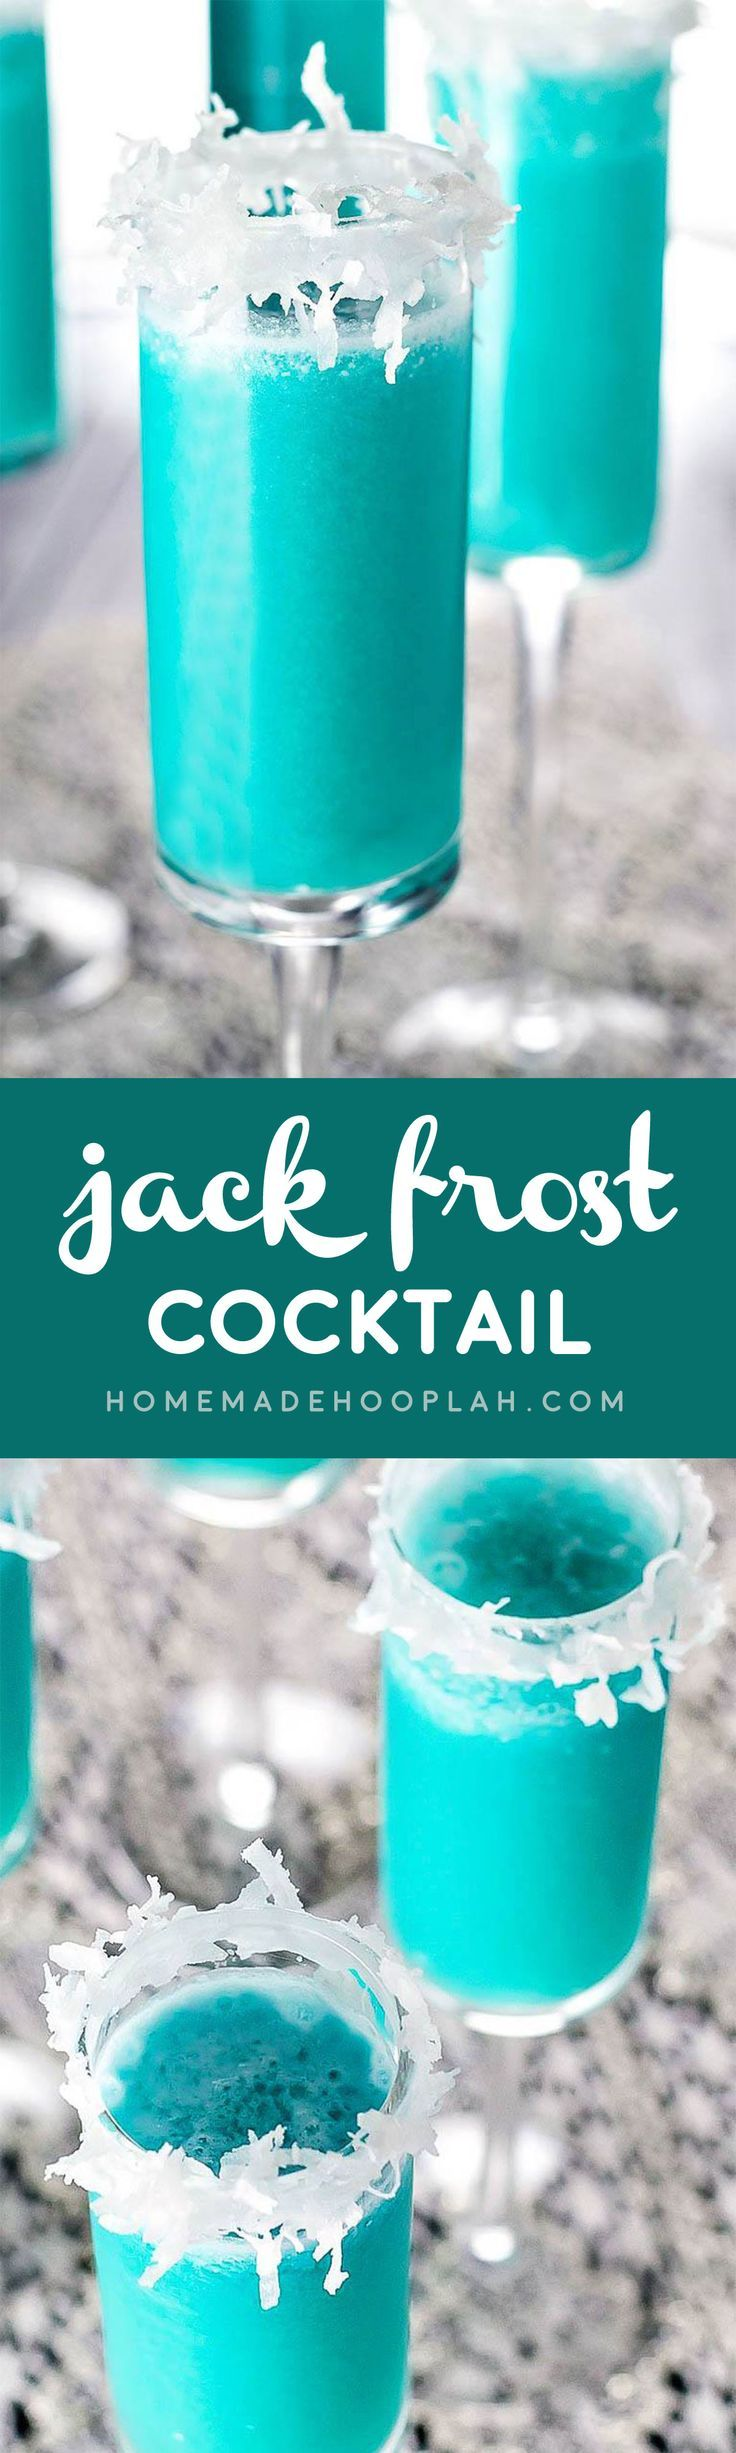 Jack Frost Cocktail! Winter's version of the piña colada! Blue curacao and shredded coconut help give this drink it's wintry flair. | HomemadeHooplah.com